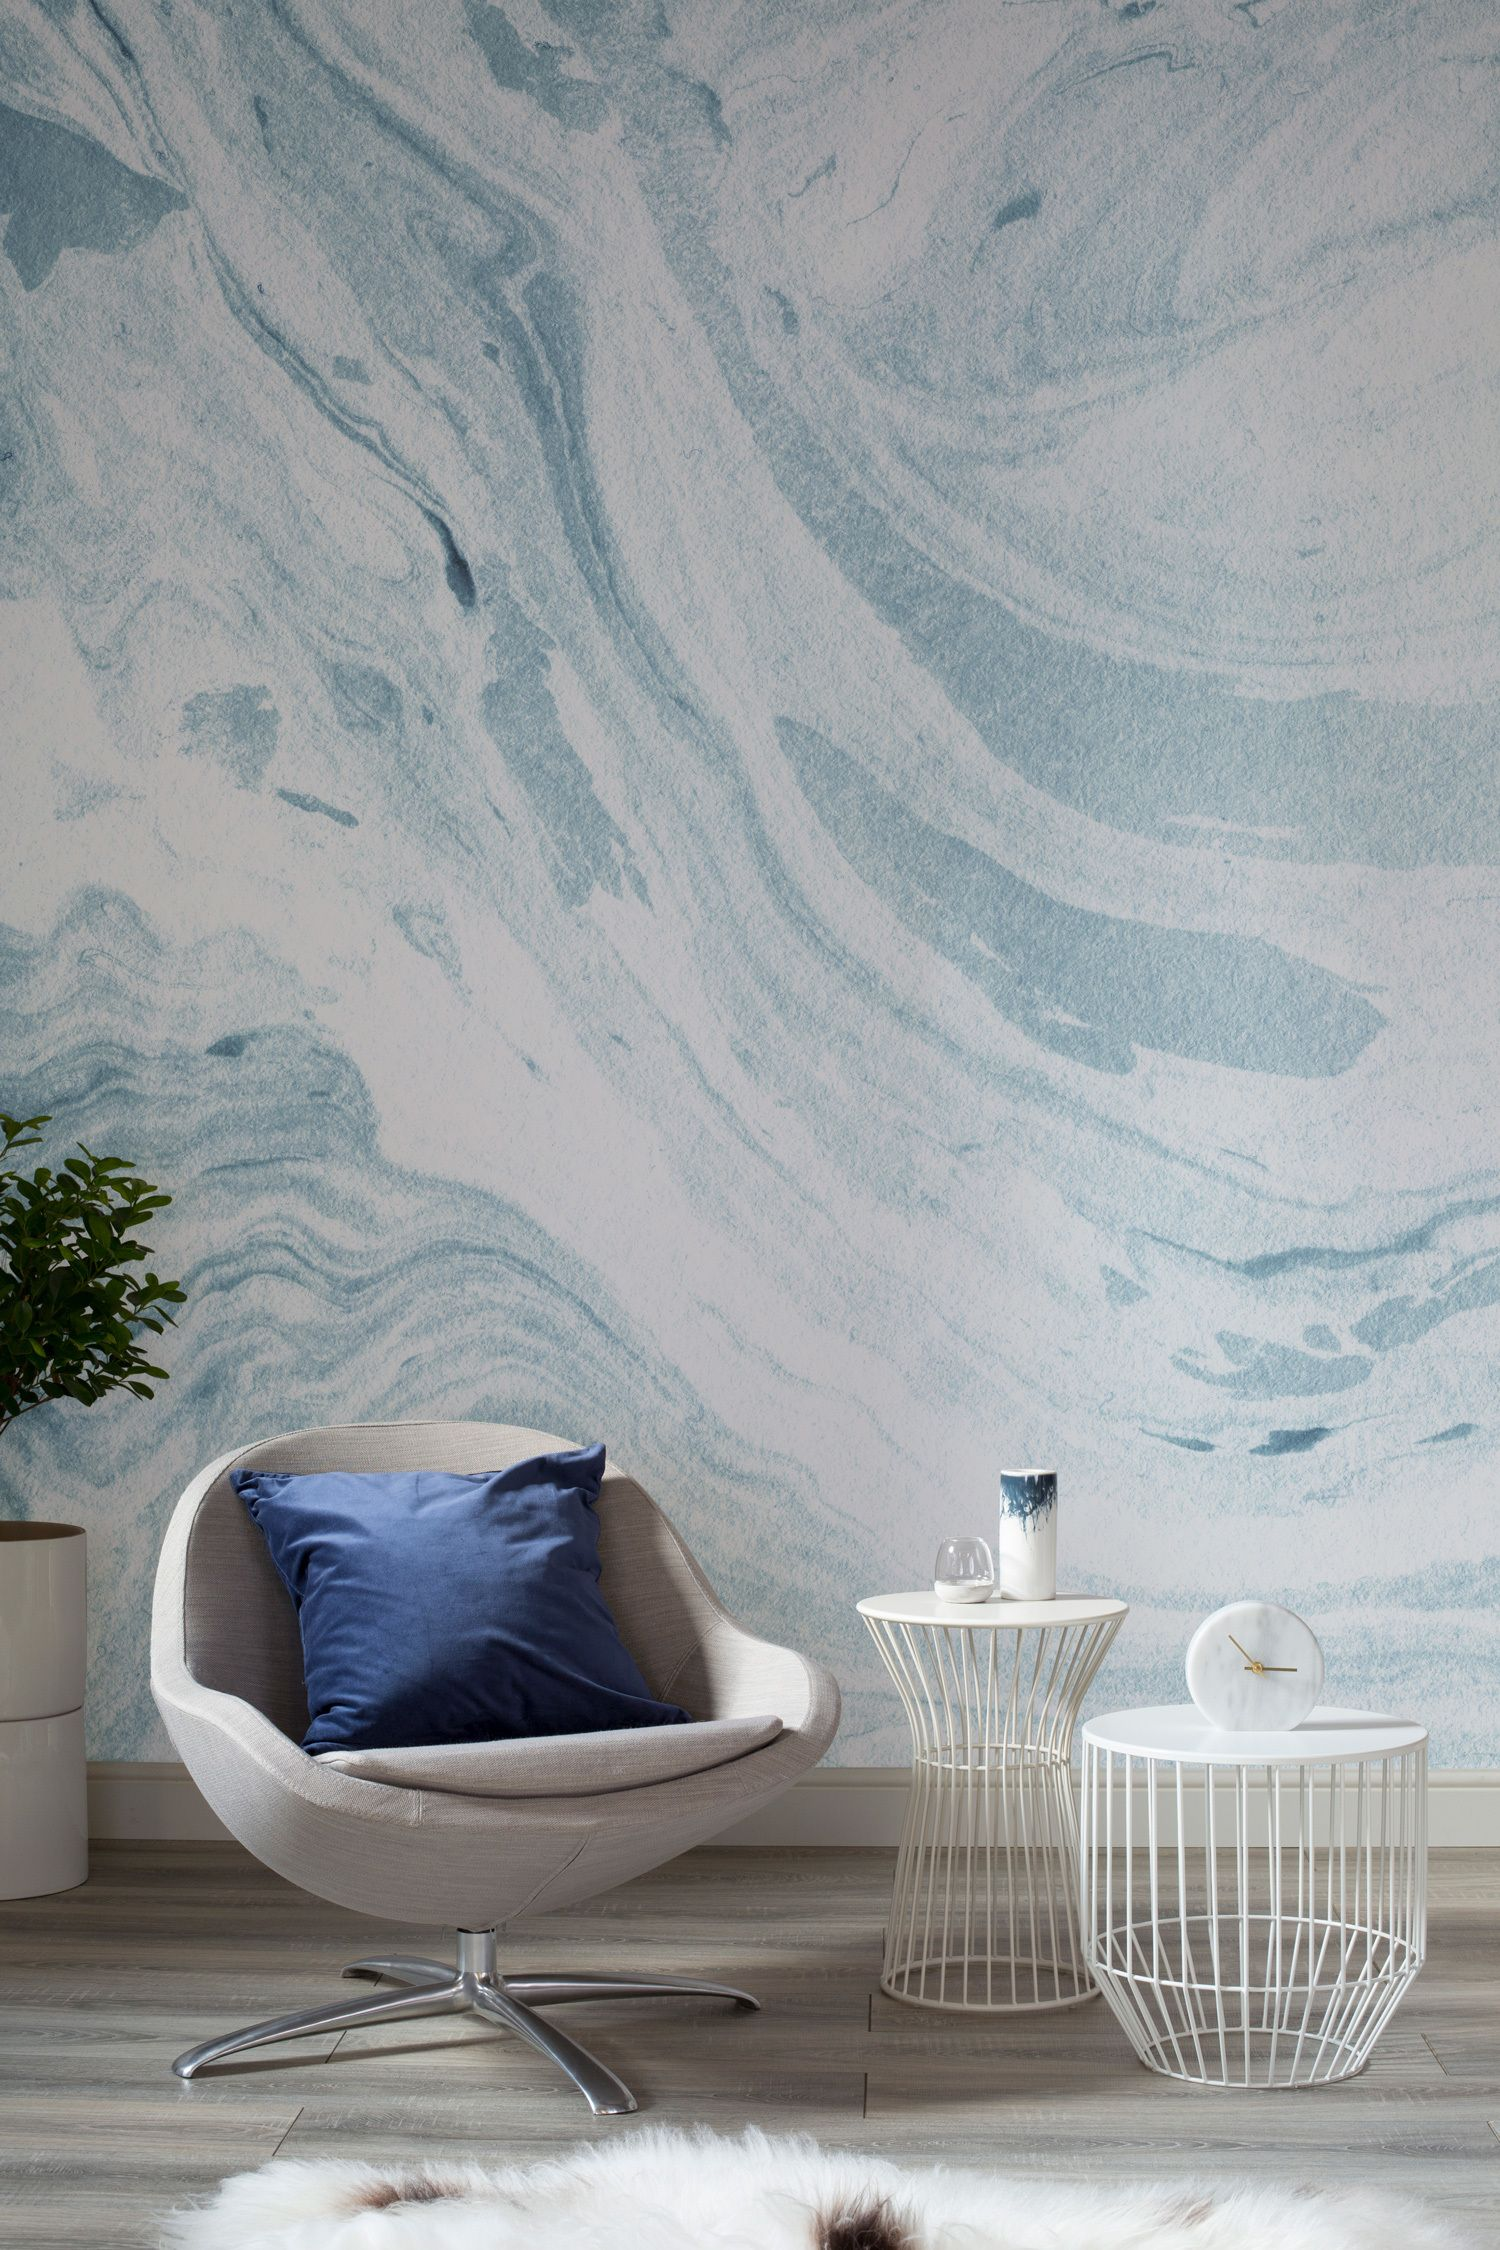 Blue and white marbleized wallpaper mural wall murals murals blue and white marbleized wallpaper mural amipublicfo Choice Image